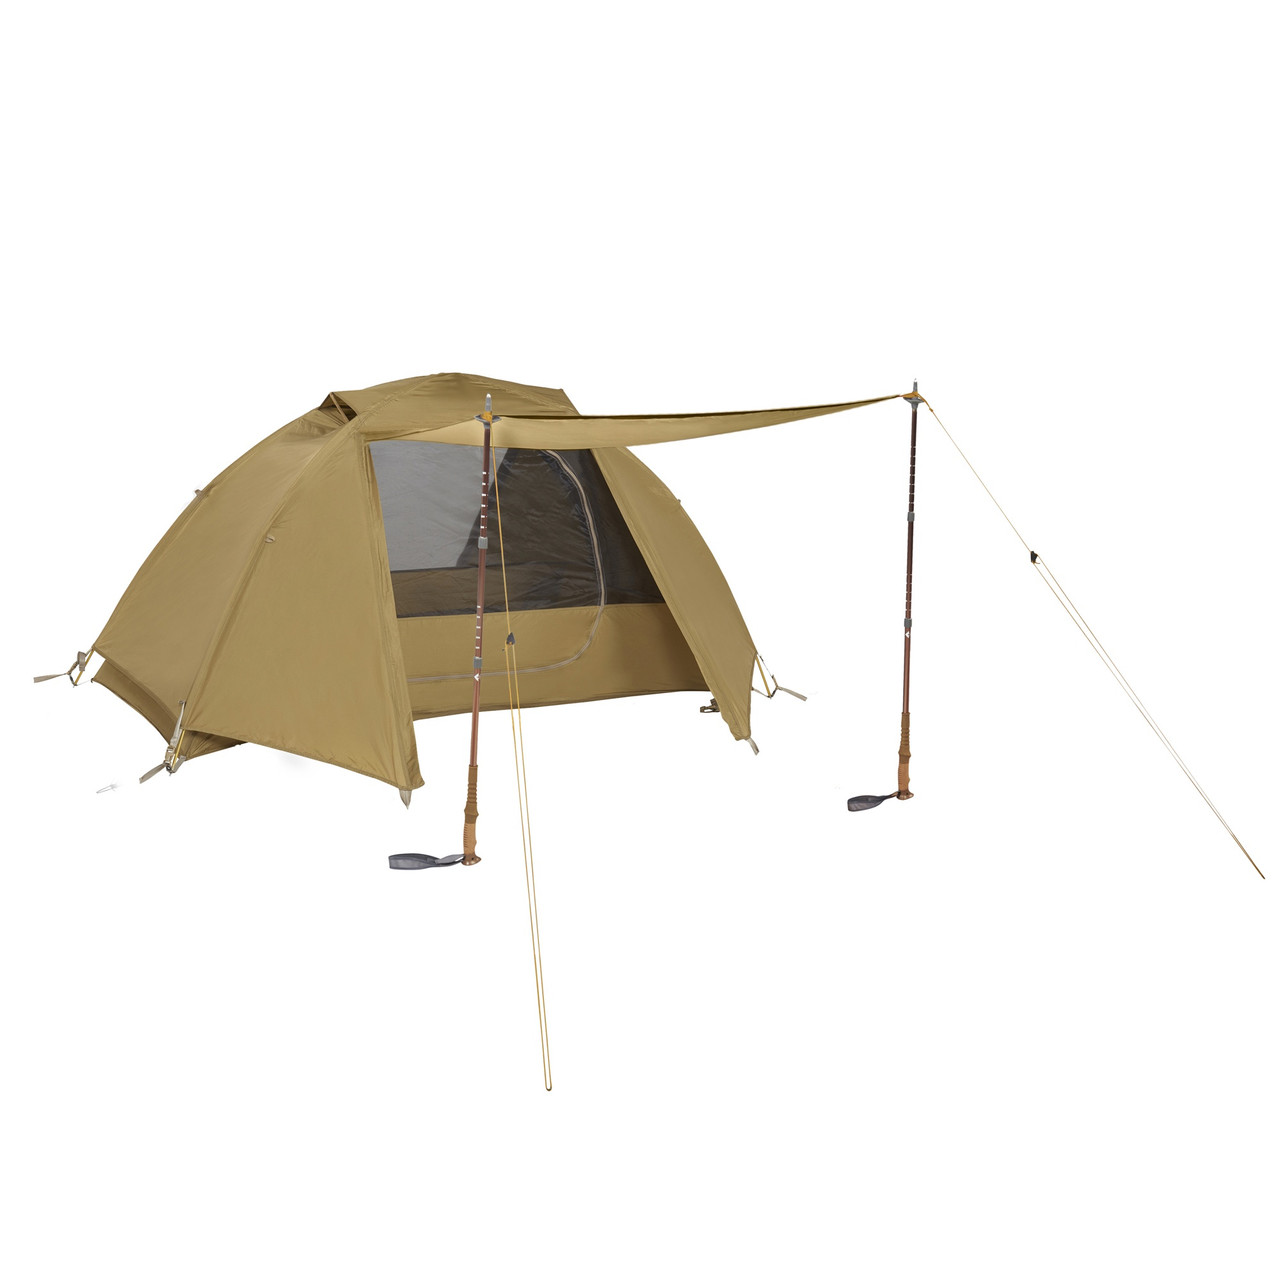 Kelty 2 Man Field Tent Import tent, brown, shown with rain fly attached and unzipped, and awning deployed with 2 trekking poles